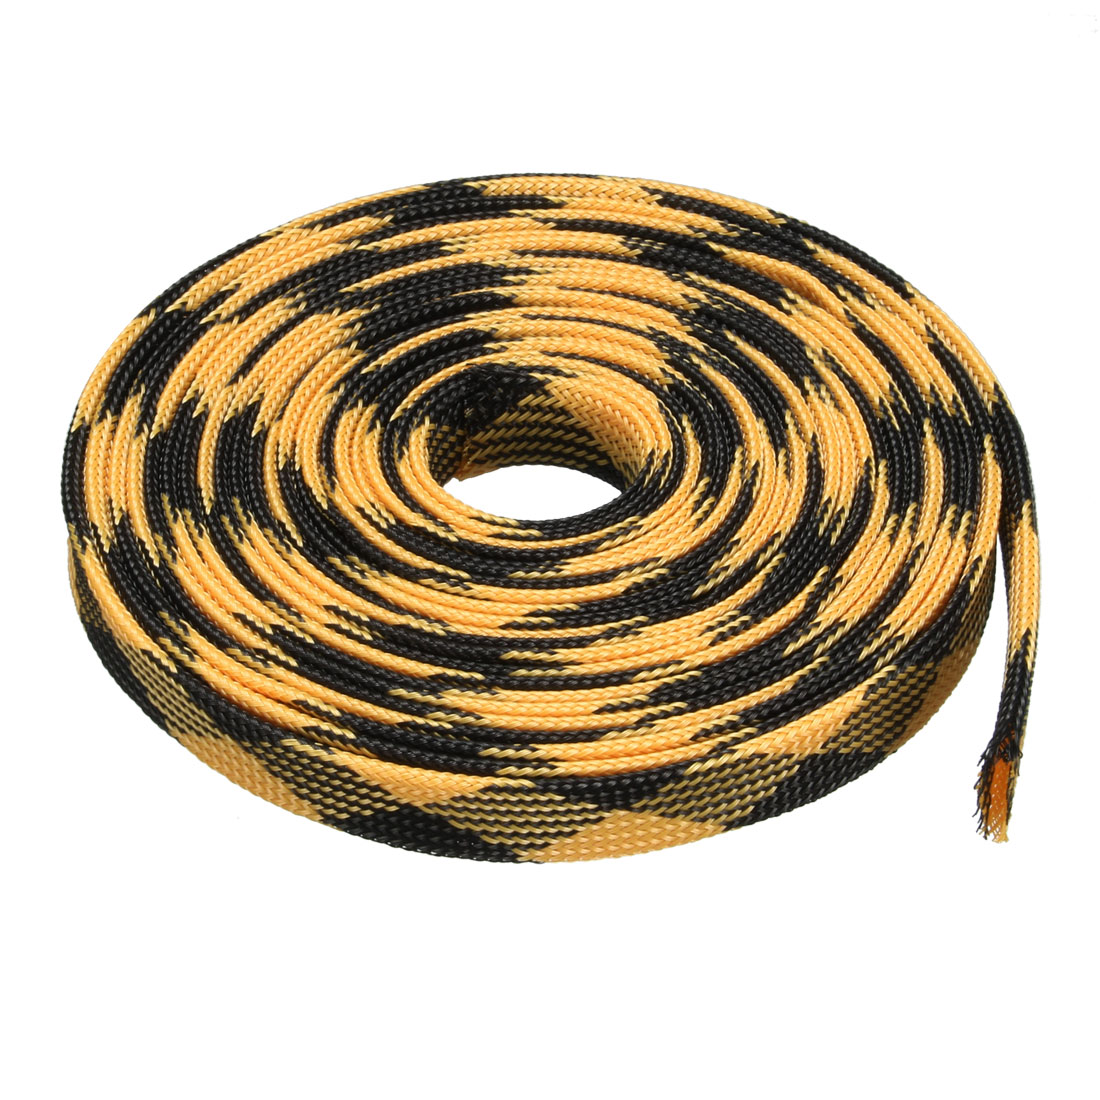 12mm Dia Tight Braided PET Expandable Sleeving Cable Wrap Sheath Black Yellow 16Ft